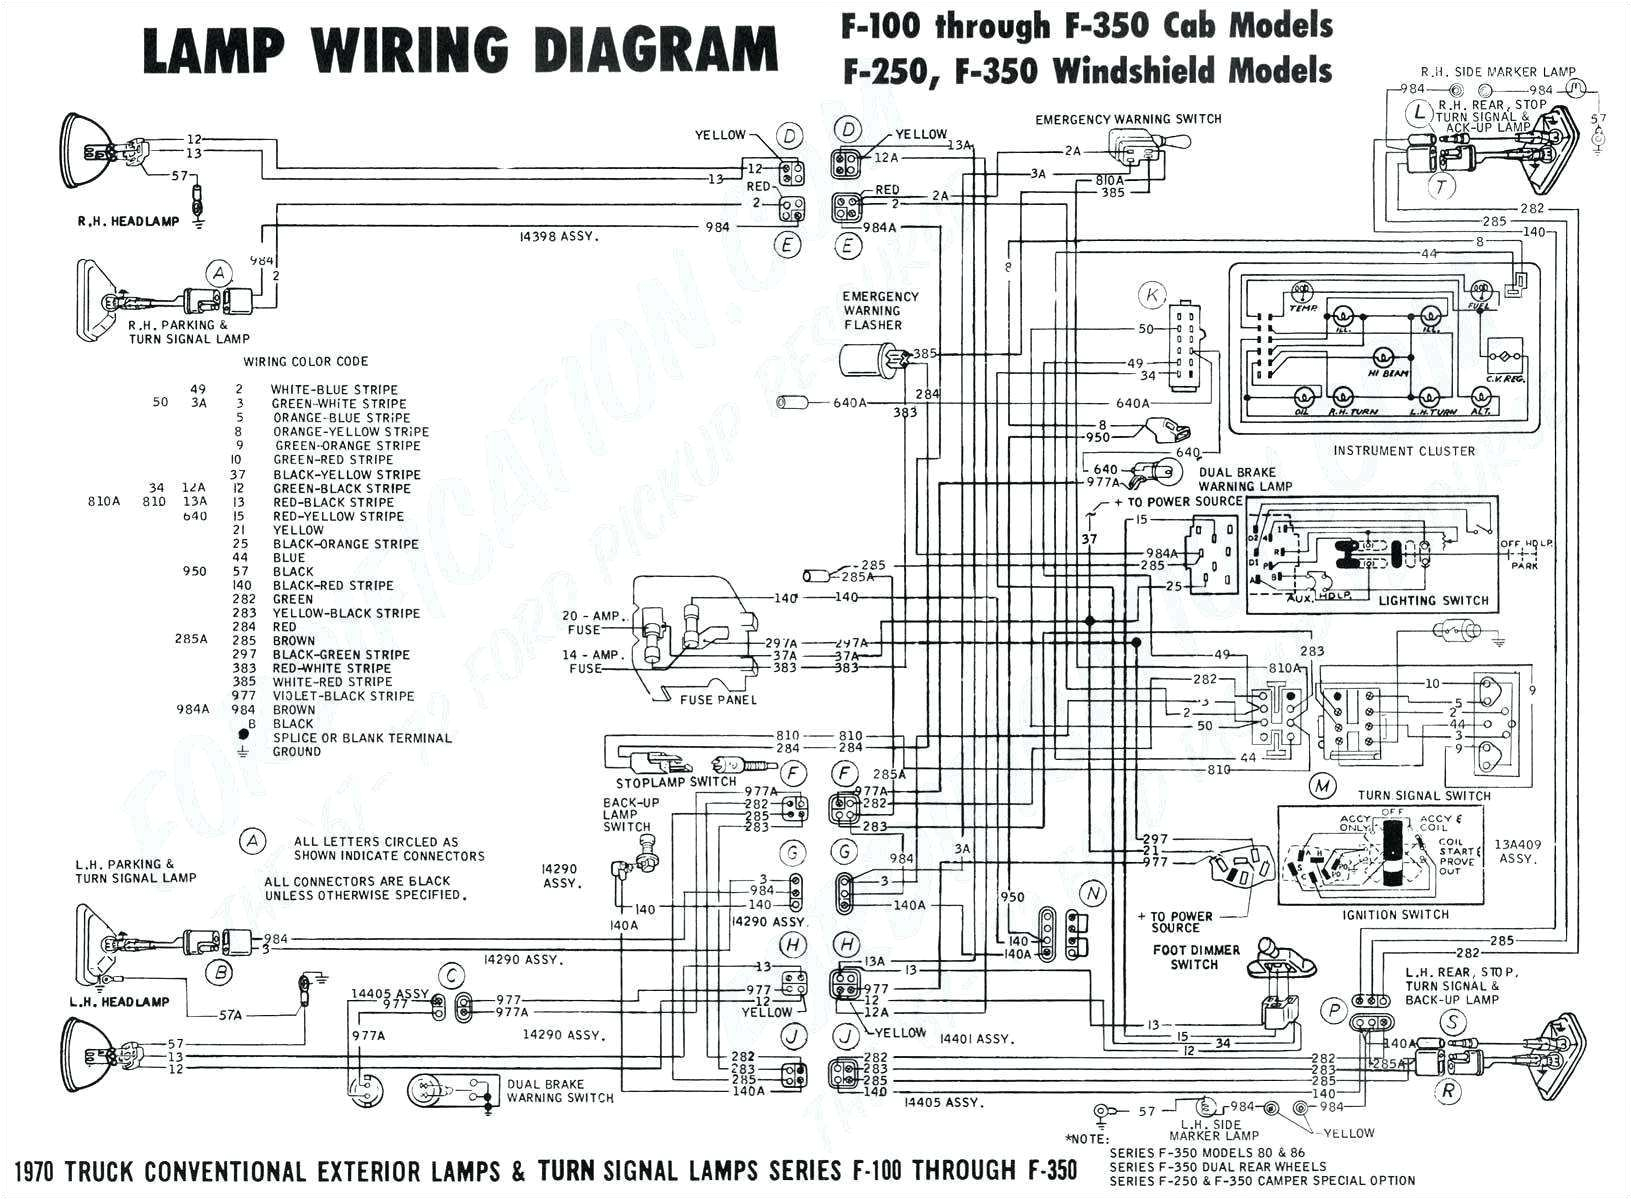 2000 chevy s10 wiring schematic for rear lights wiring diagram db 2000 chevy s10 rear lights